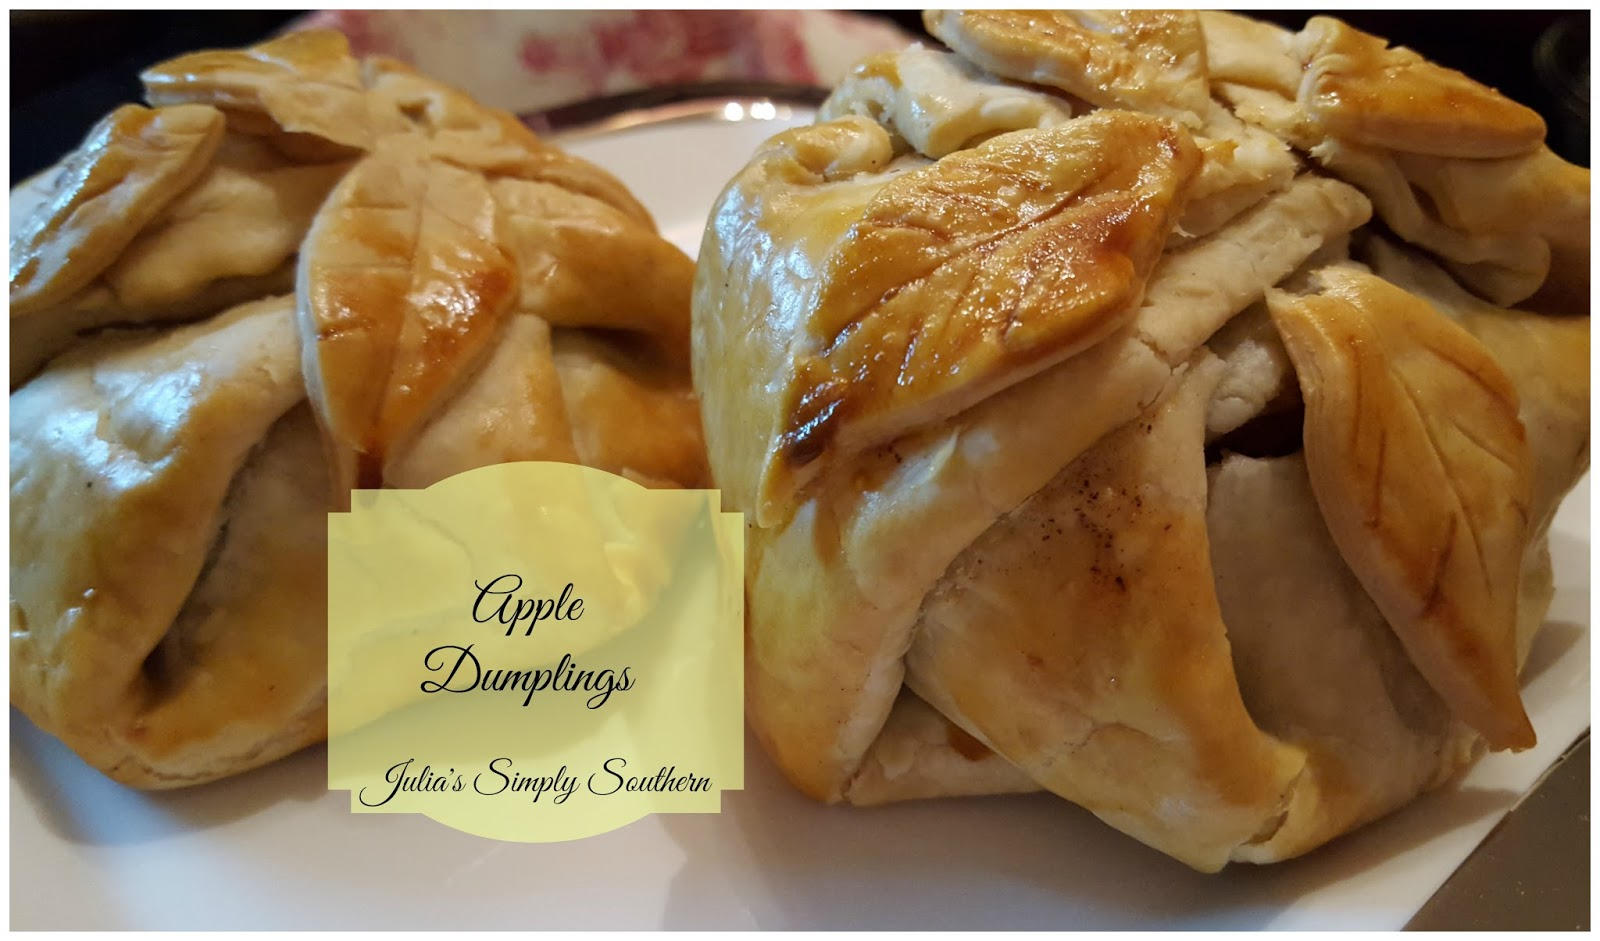 Julia's Simply Southern: Apple Dumplings